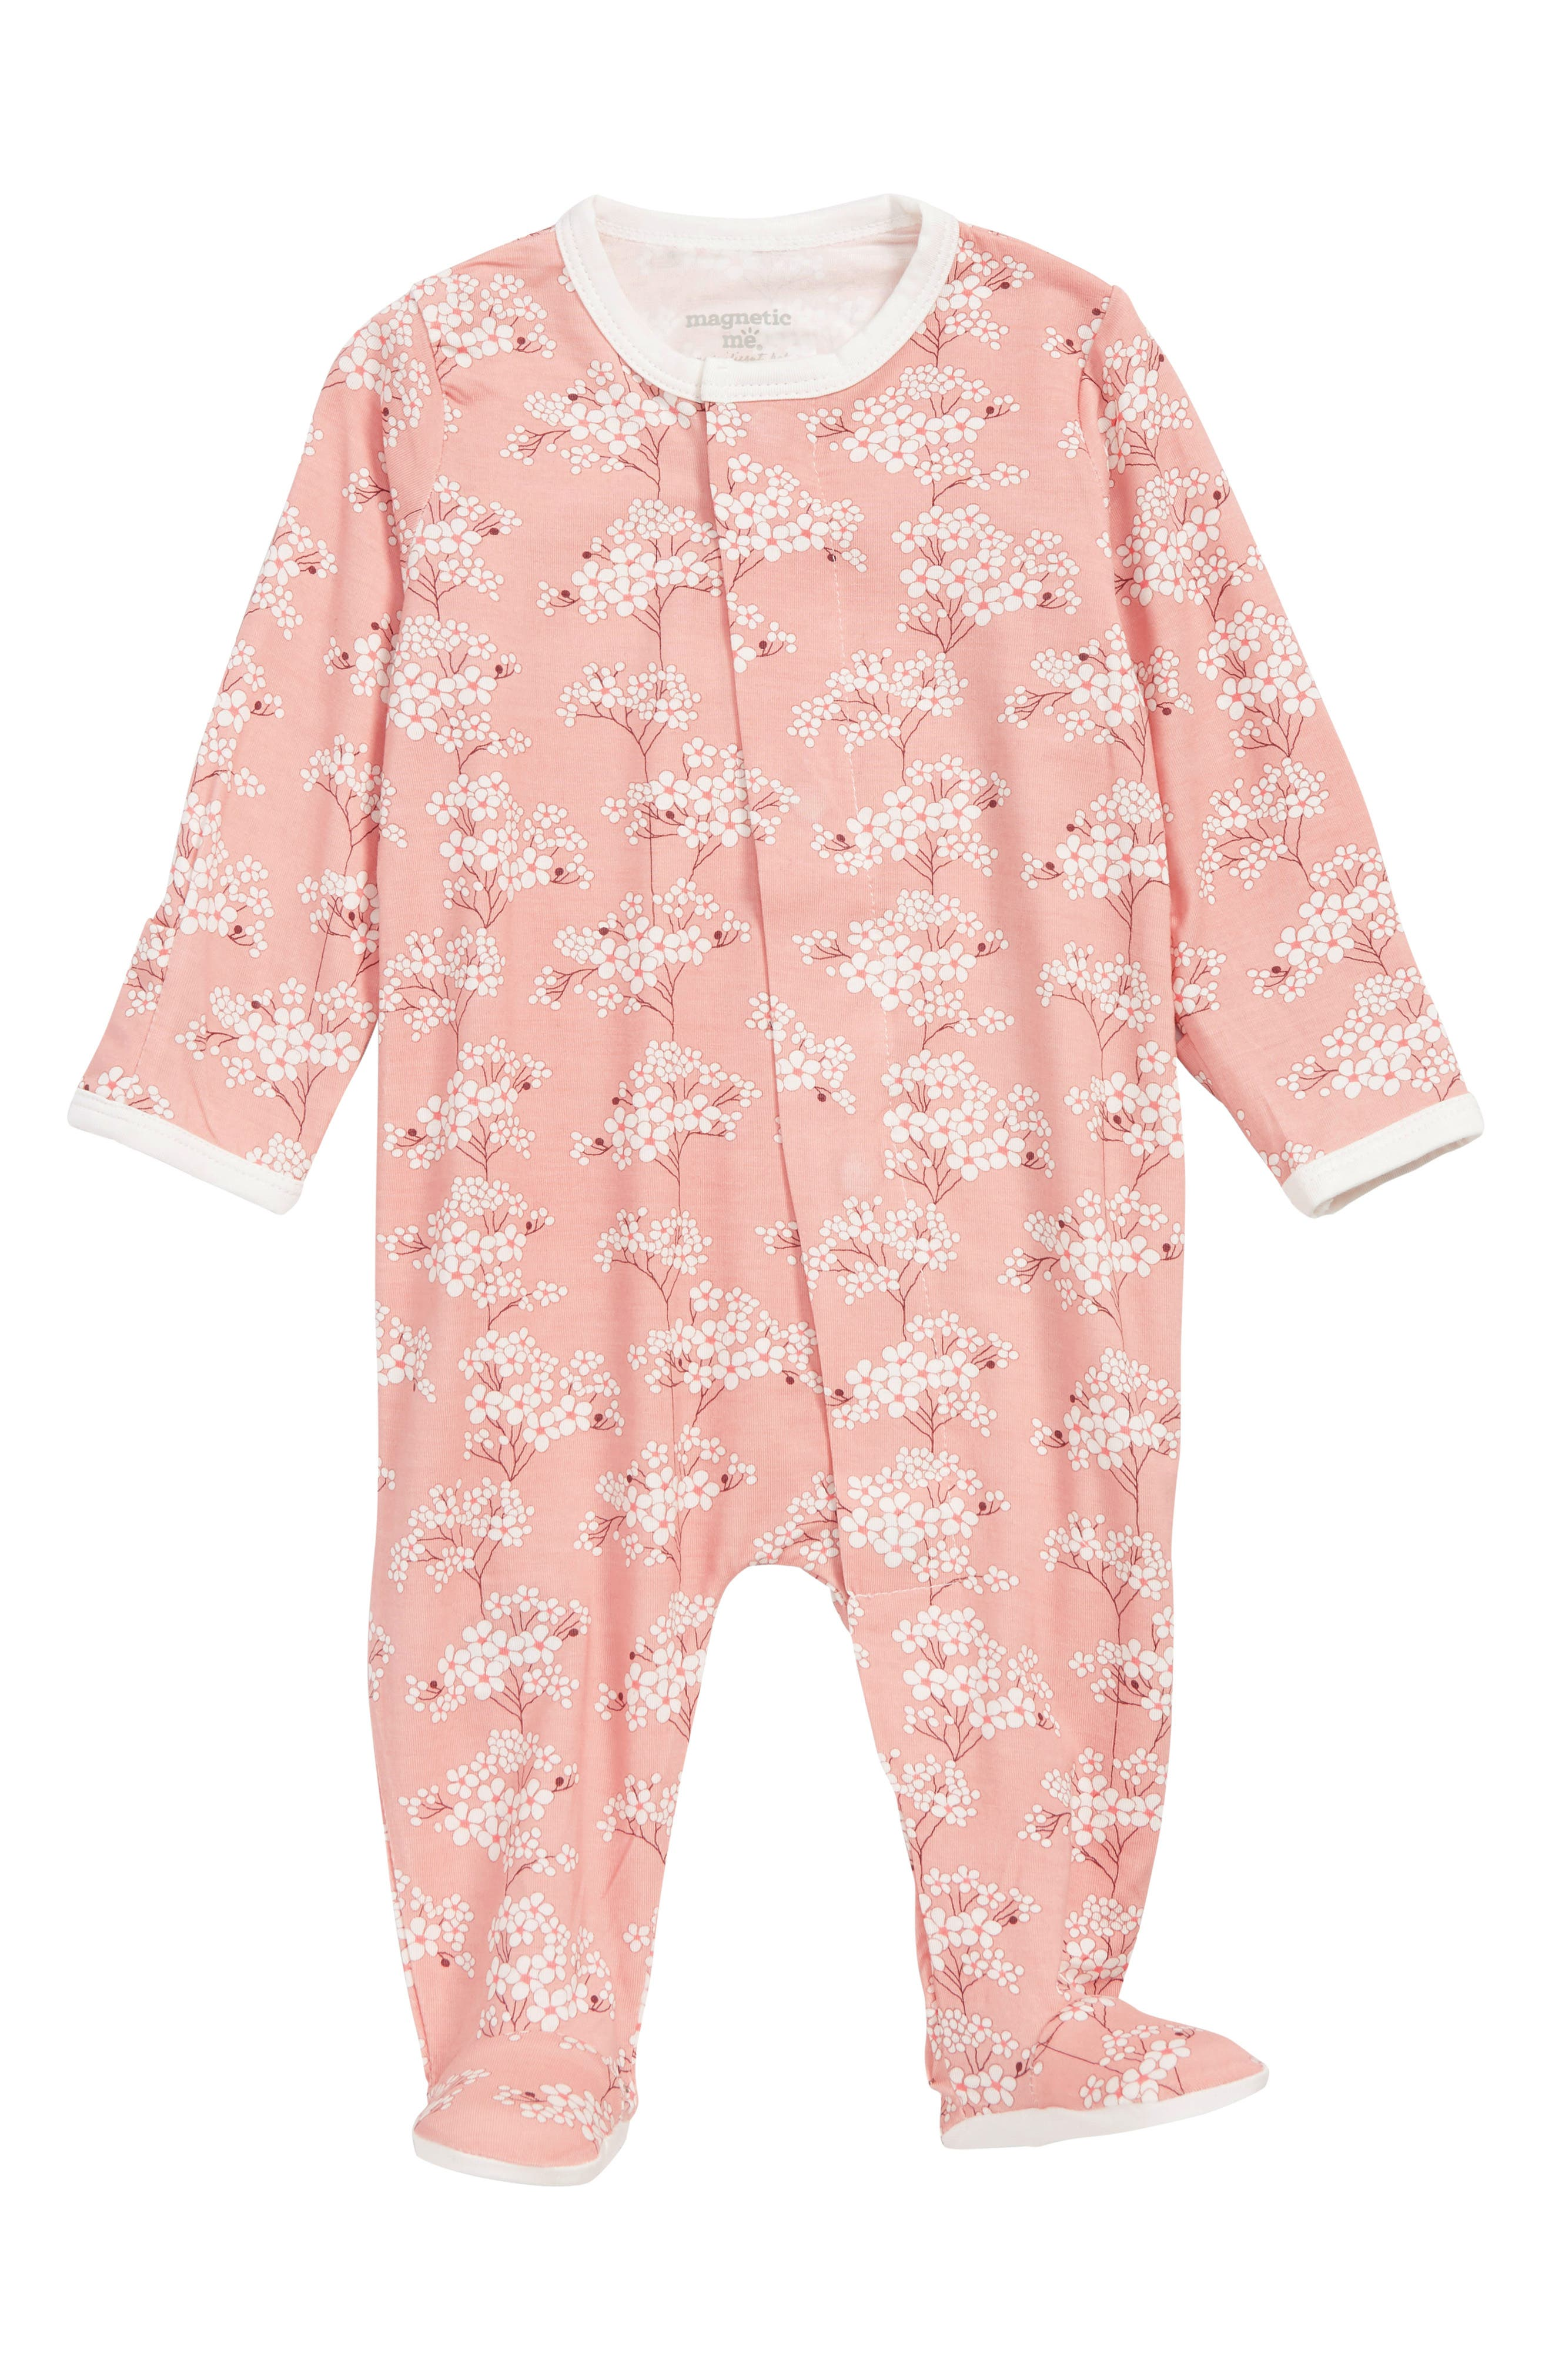 MAGNETIC ME, Cherry Blossom Footie, Main thumbnail 1, color, 650